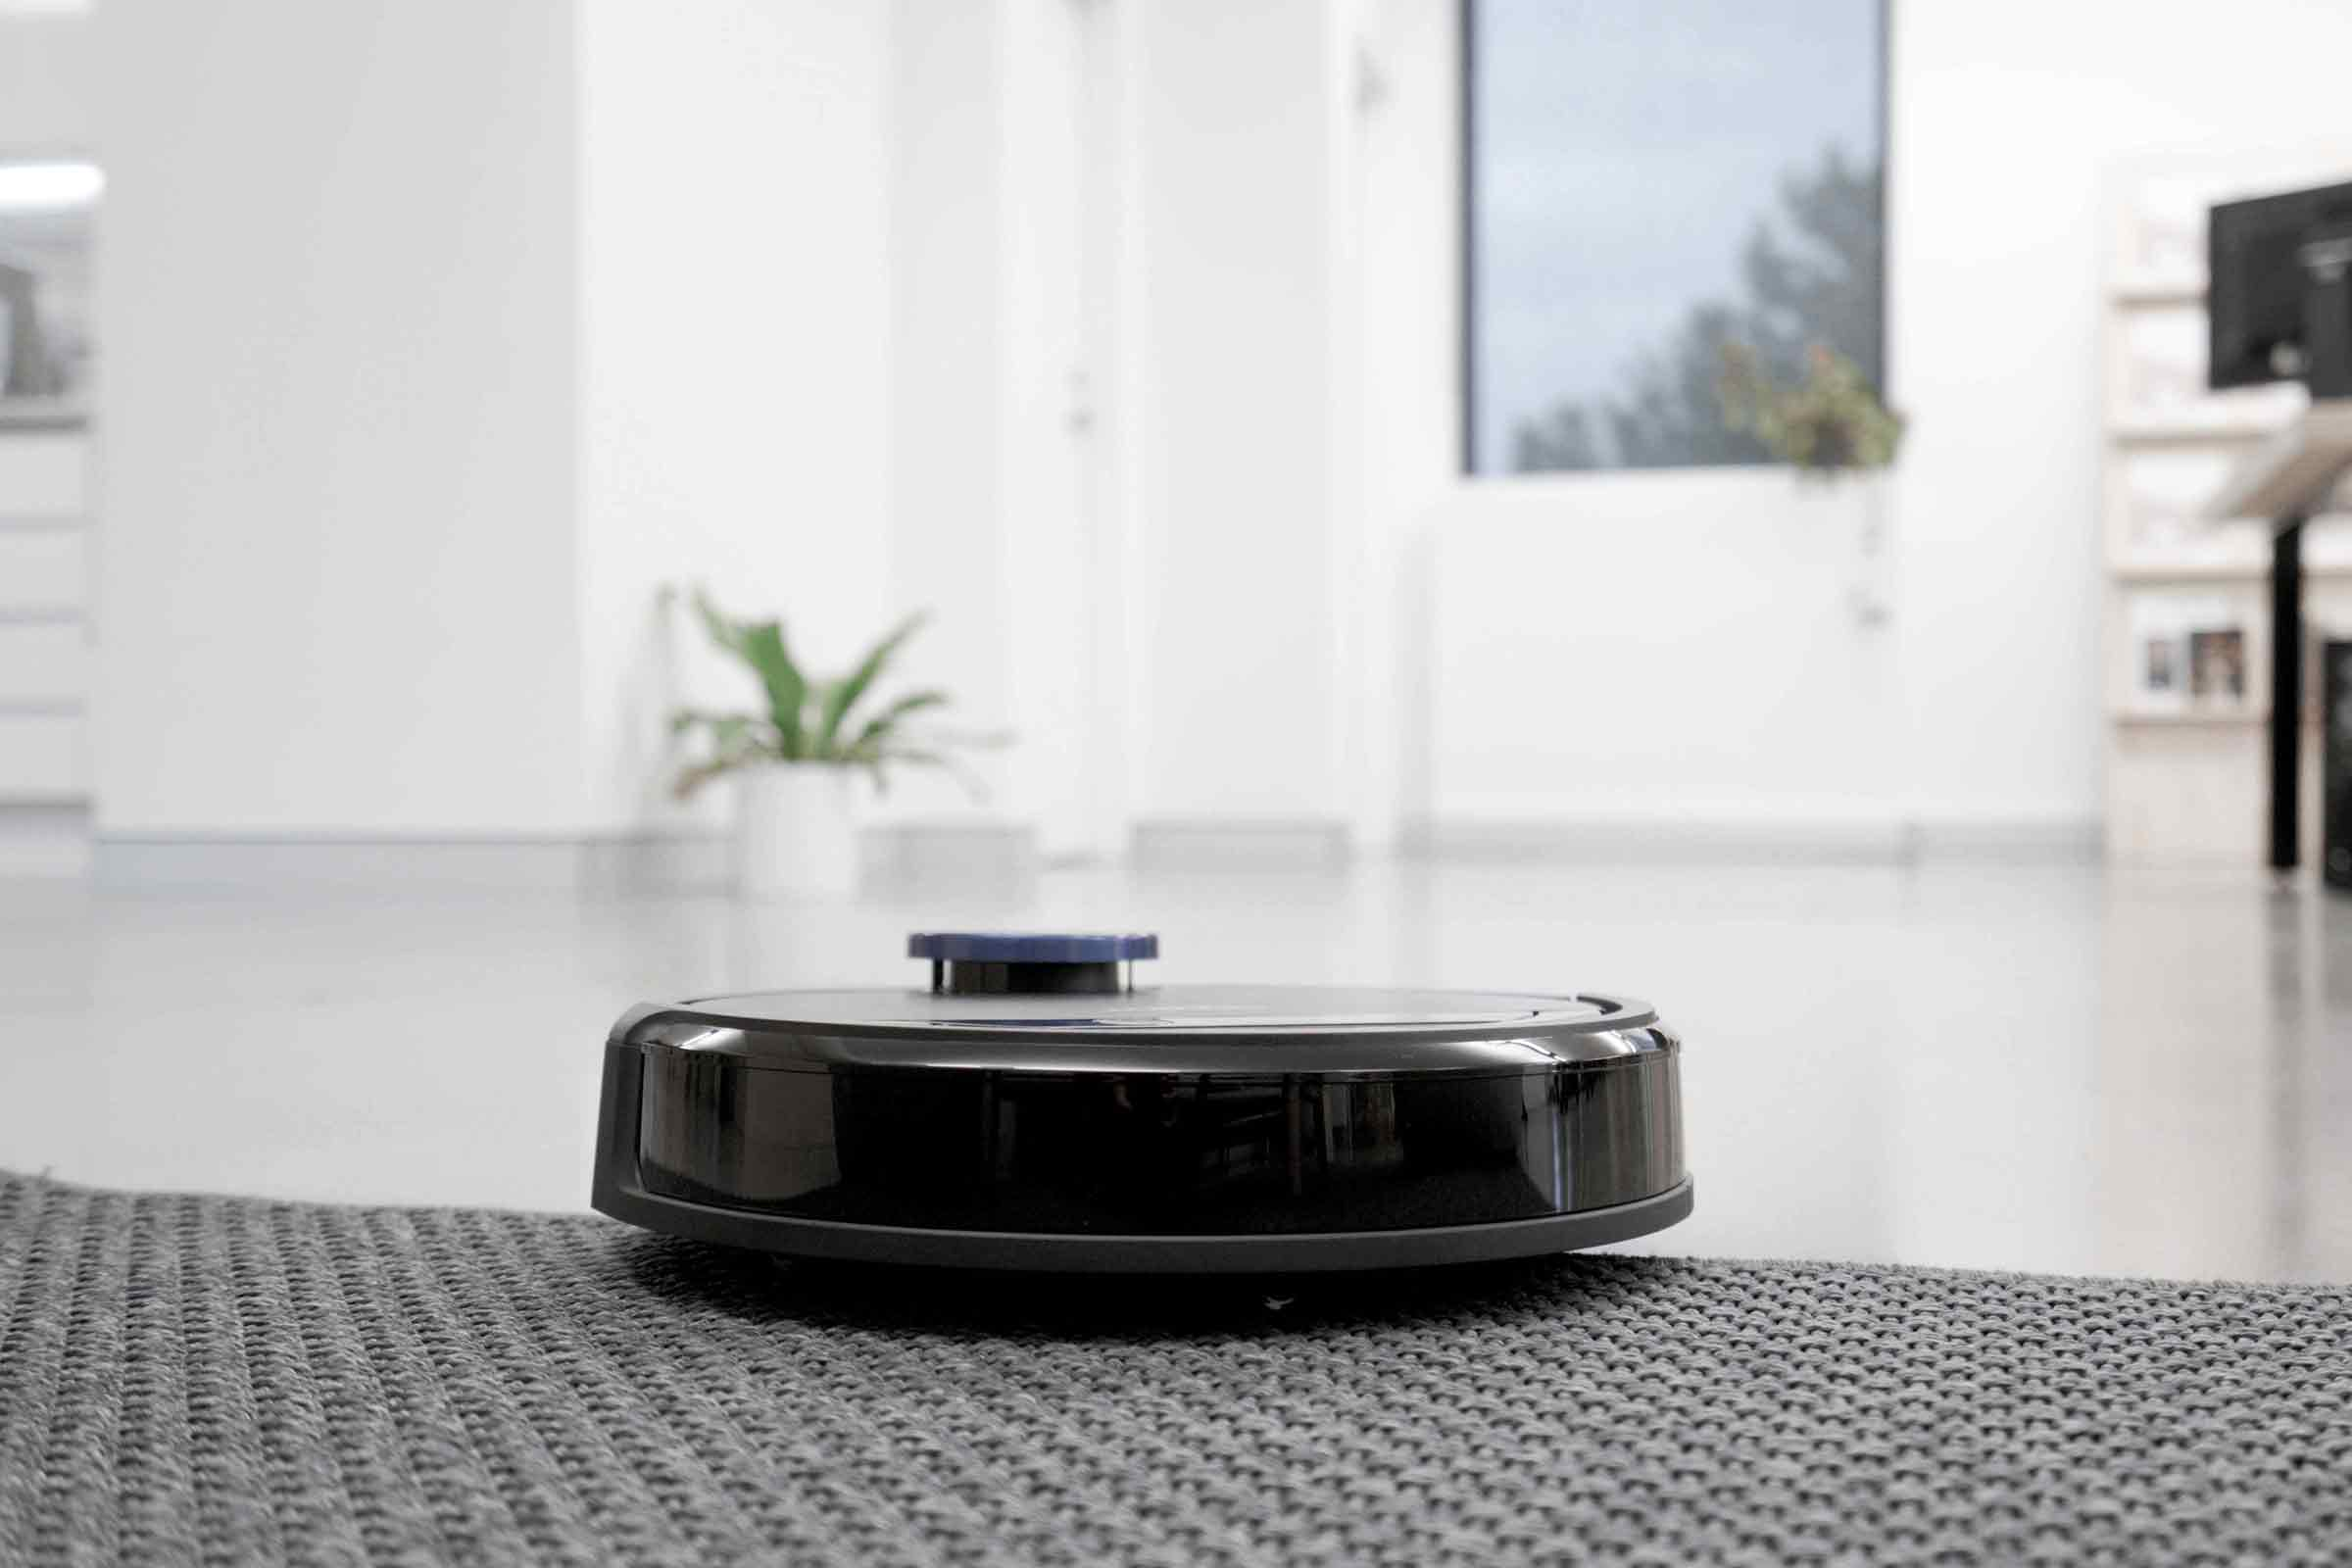 Deebot Ozmo 930 Review | Your Robot Housekeeper